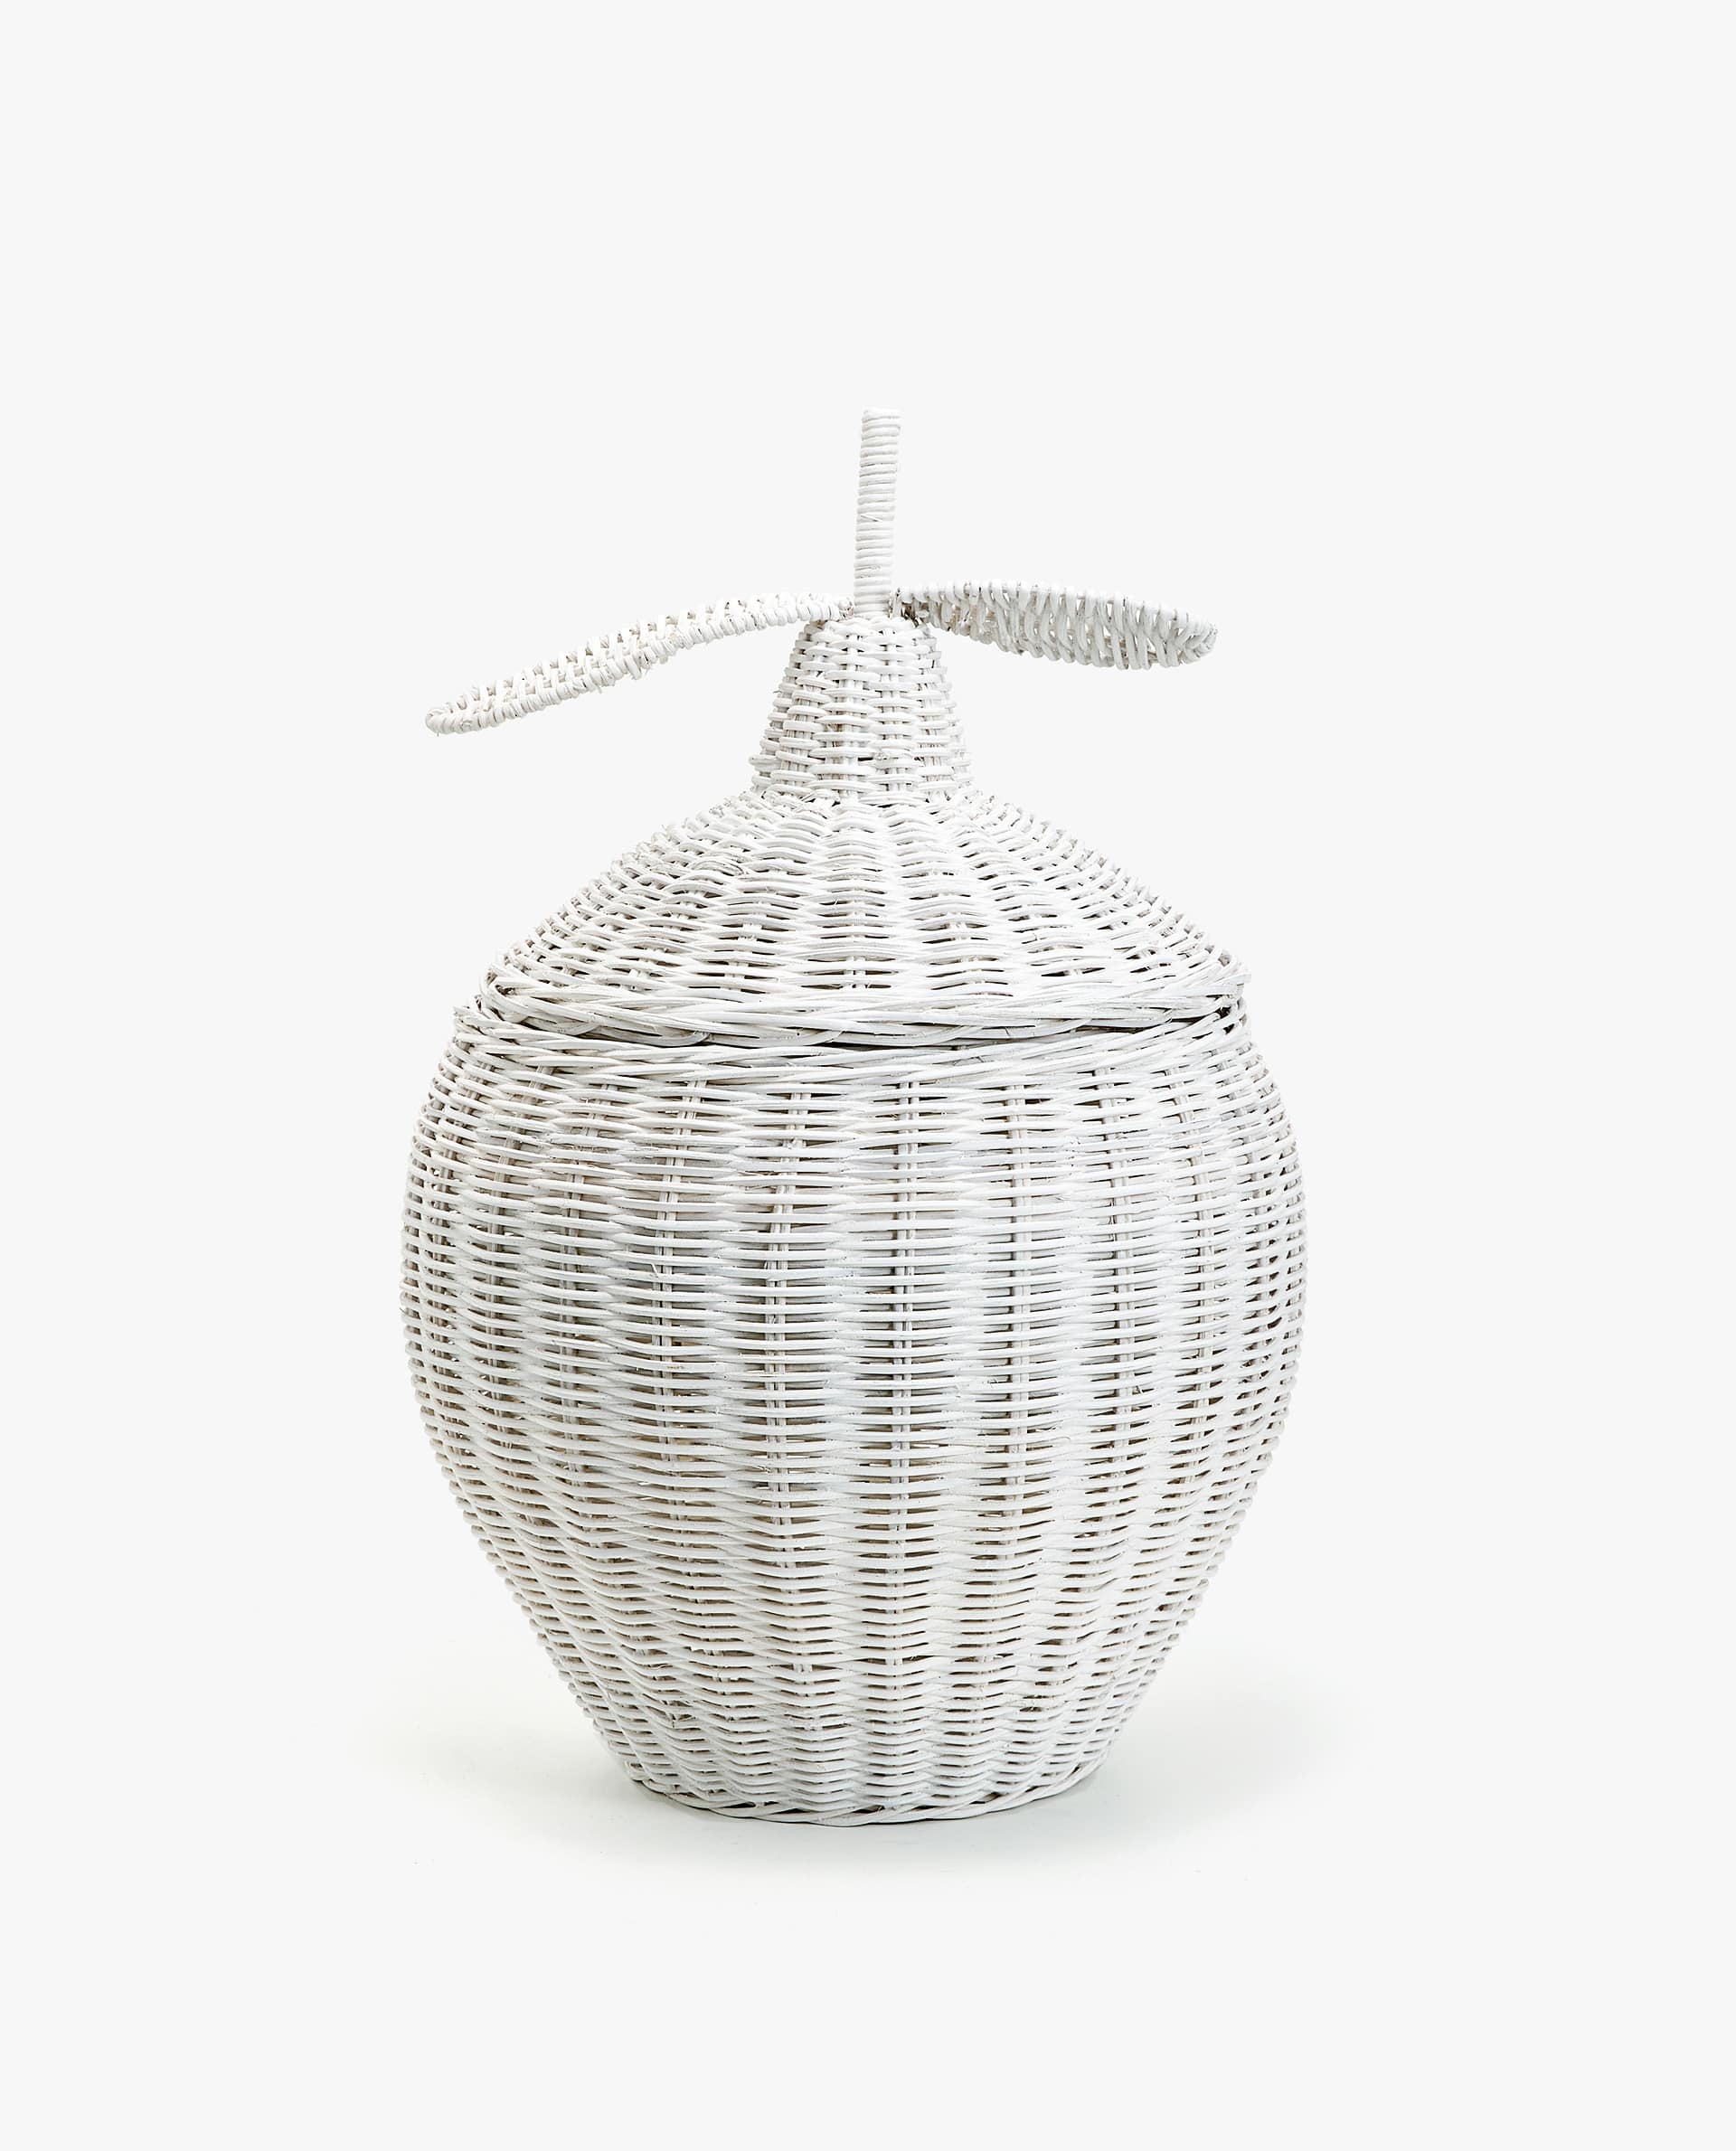 Lemon Shaped Woven Basket